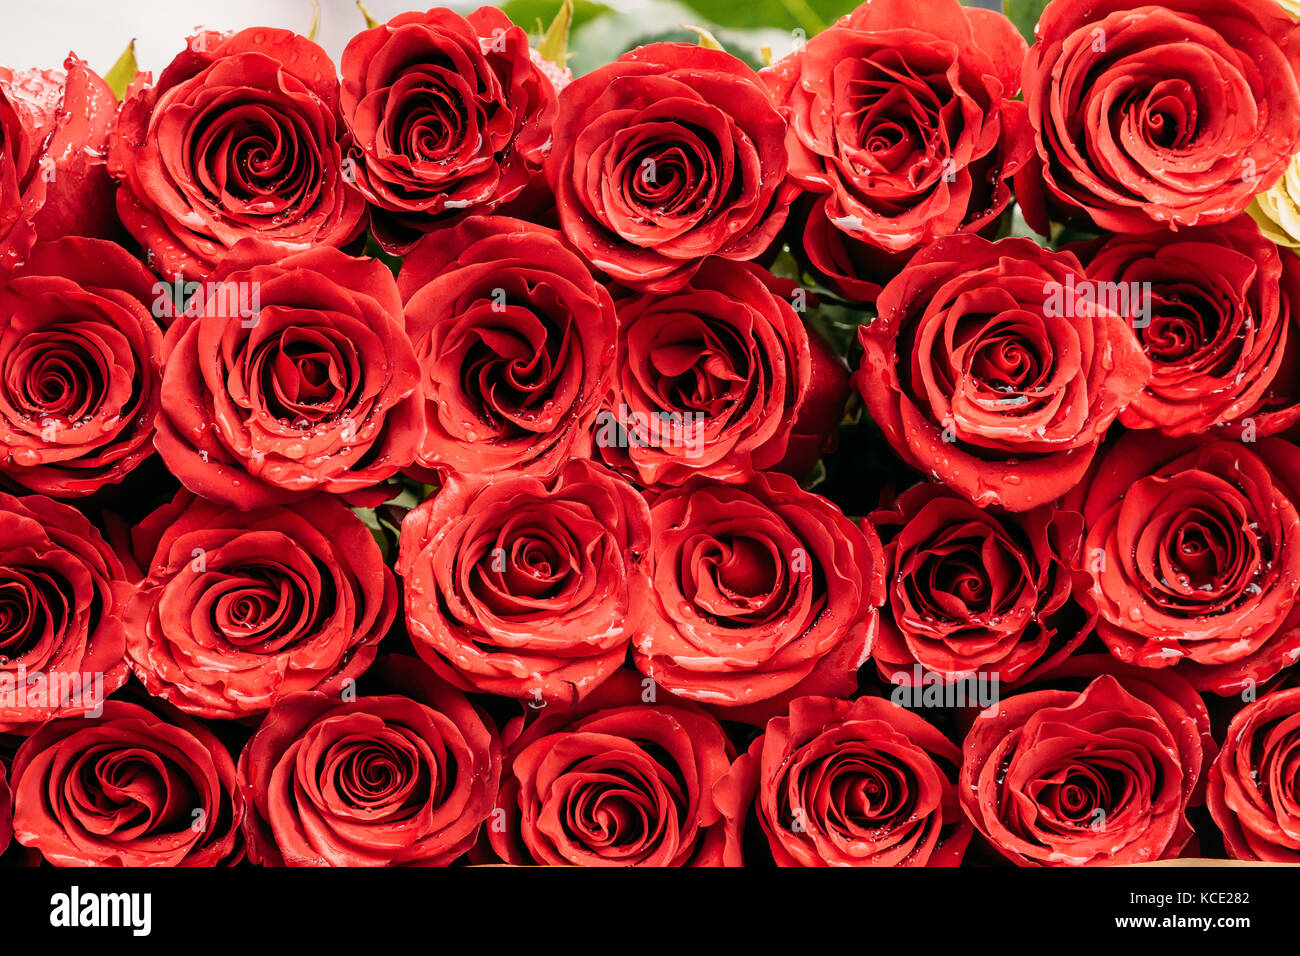 Beautiful red roses water drops stock photos beautiful red roses bouquet of beautiful red roses with drops of water stock image izmirmasajfo